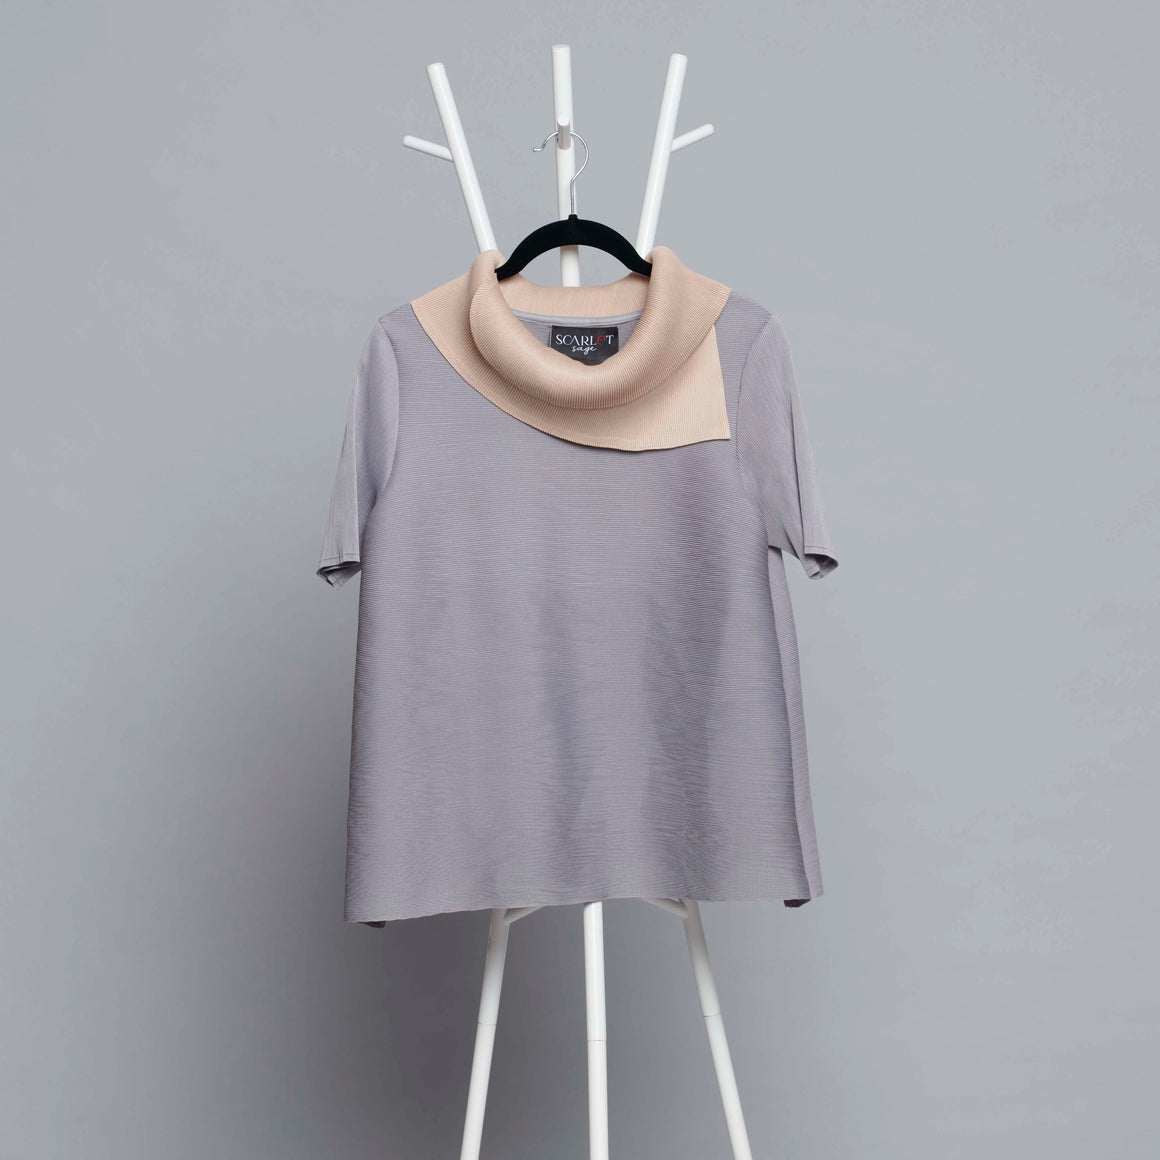 Dual Colour Turtleneck Top - Light Grey & Sand